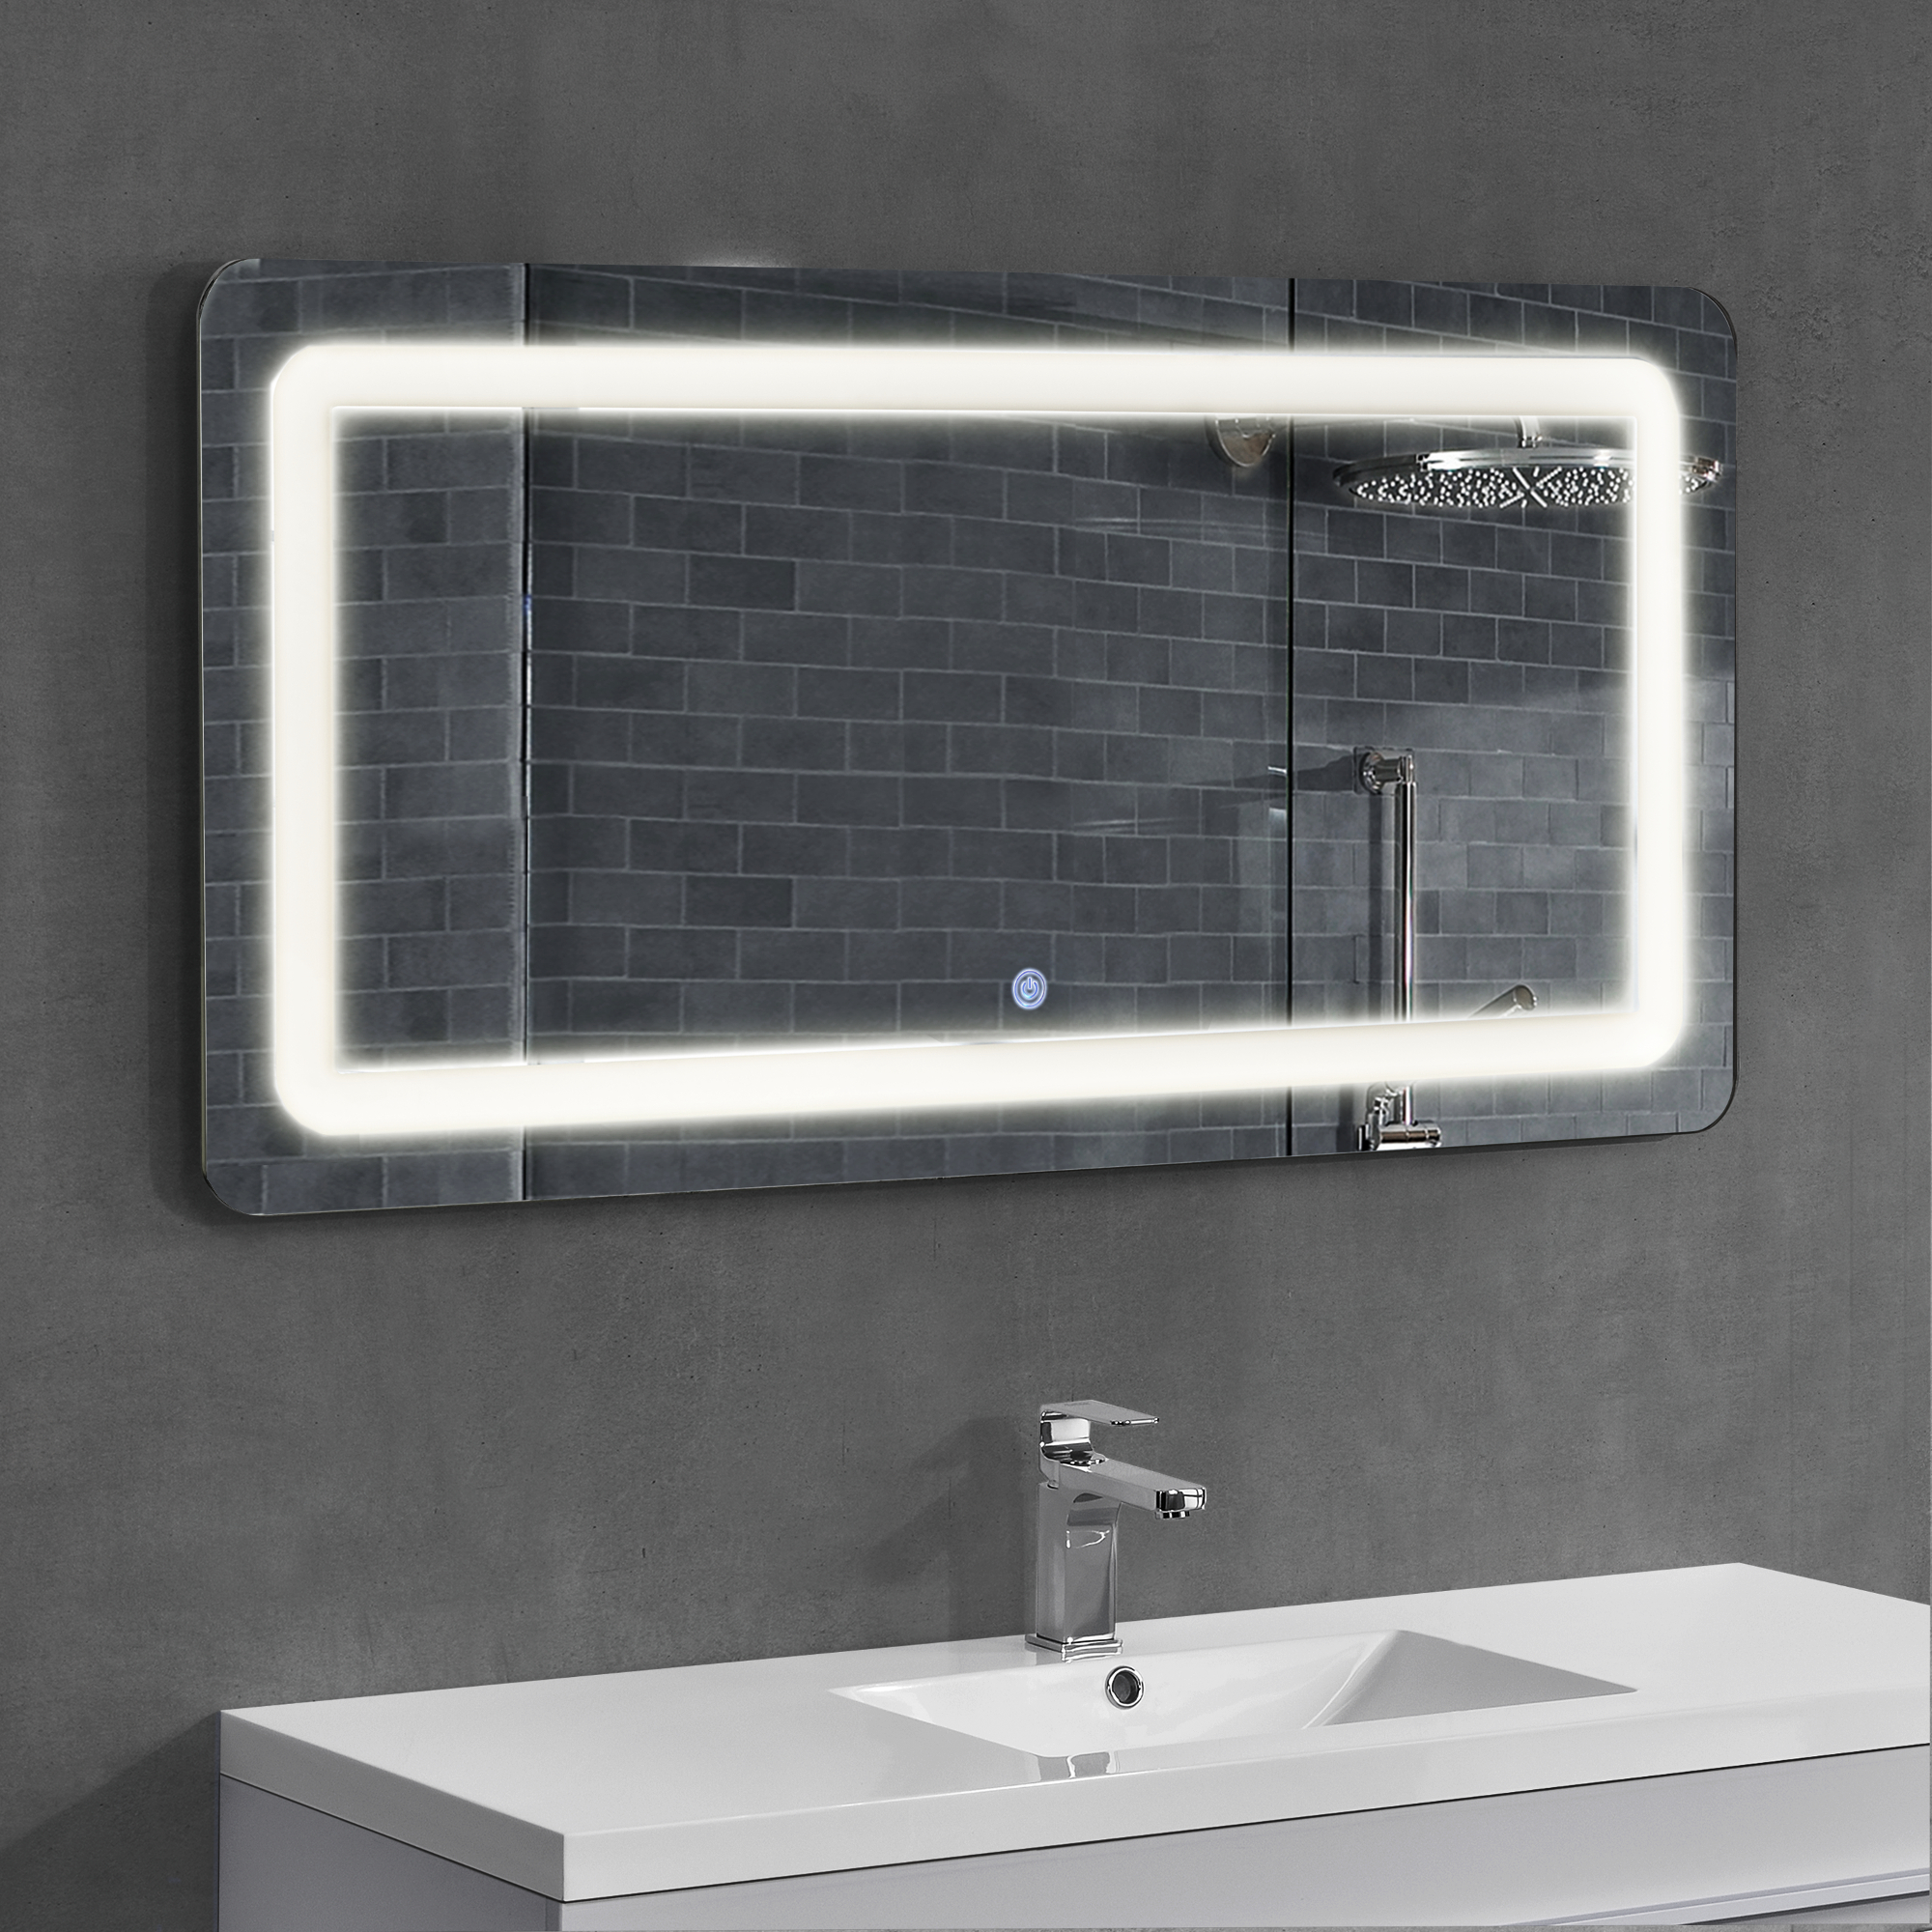 led bathroom light wall mirror light mirror design 50 x 70 cm ebay. Black Bedroom Furniture Sets. Home Design Ideas